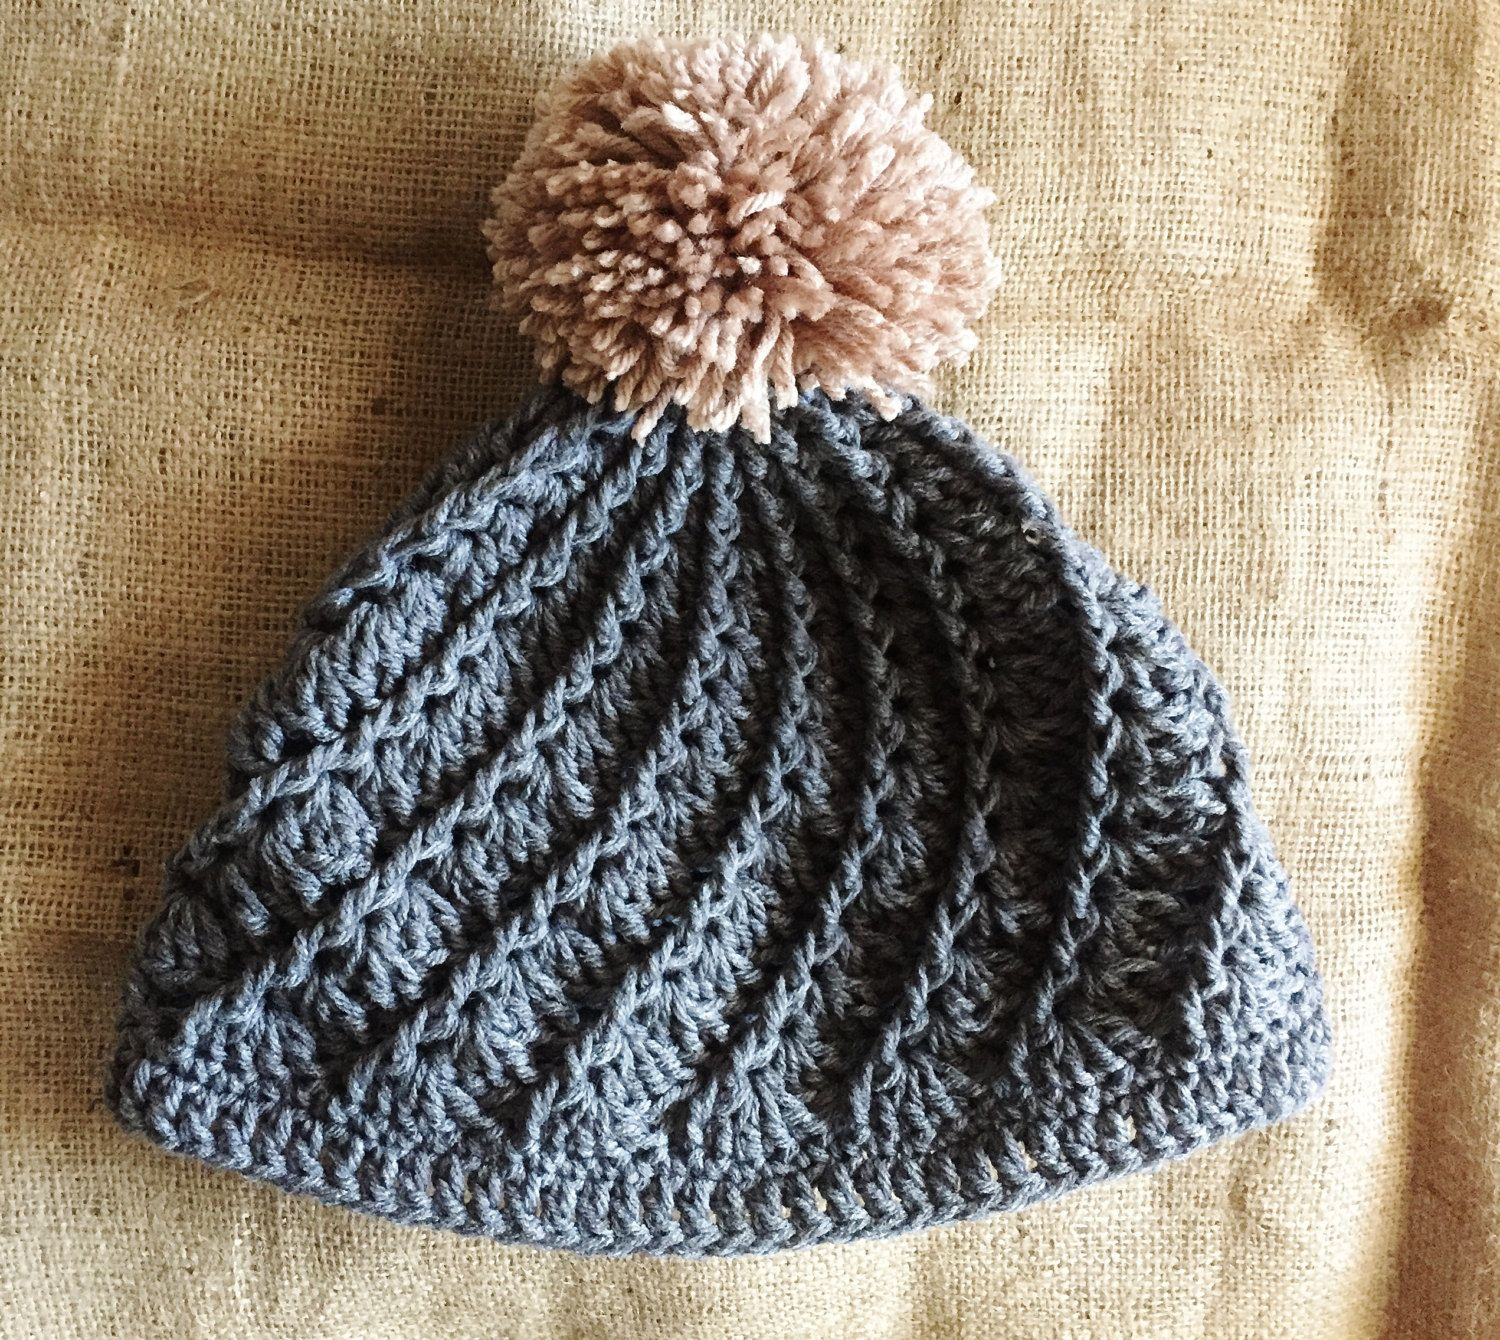 crochet spiral pattern hipster winter hat beanie with pom pom